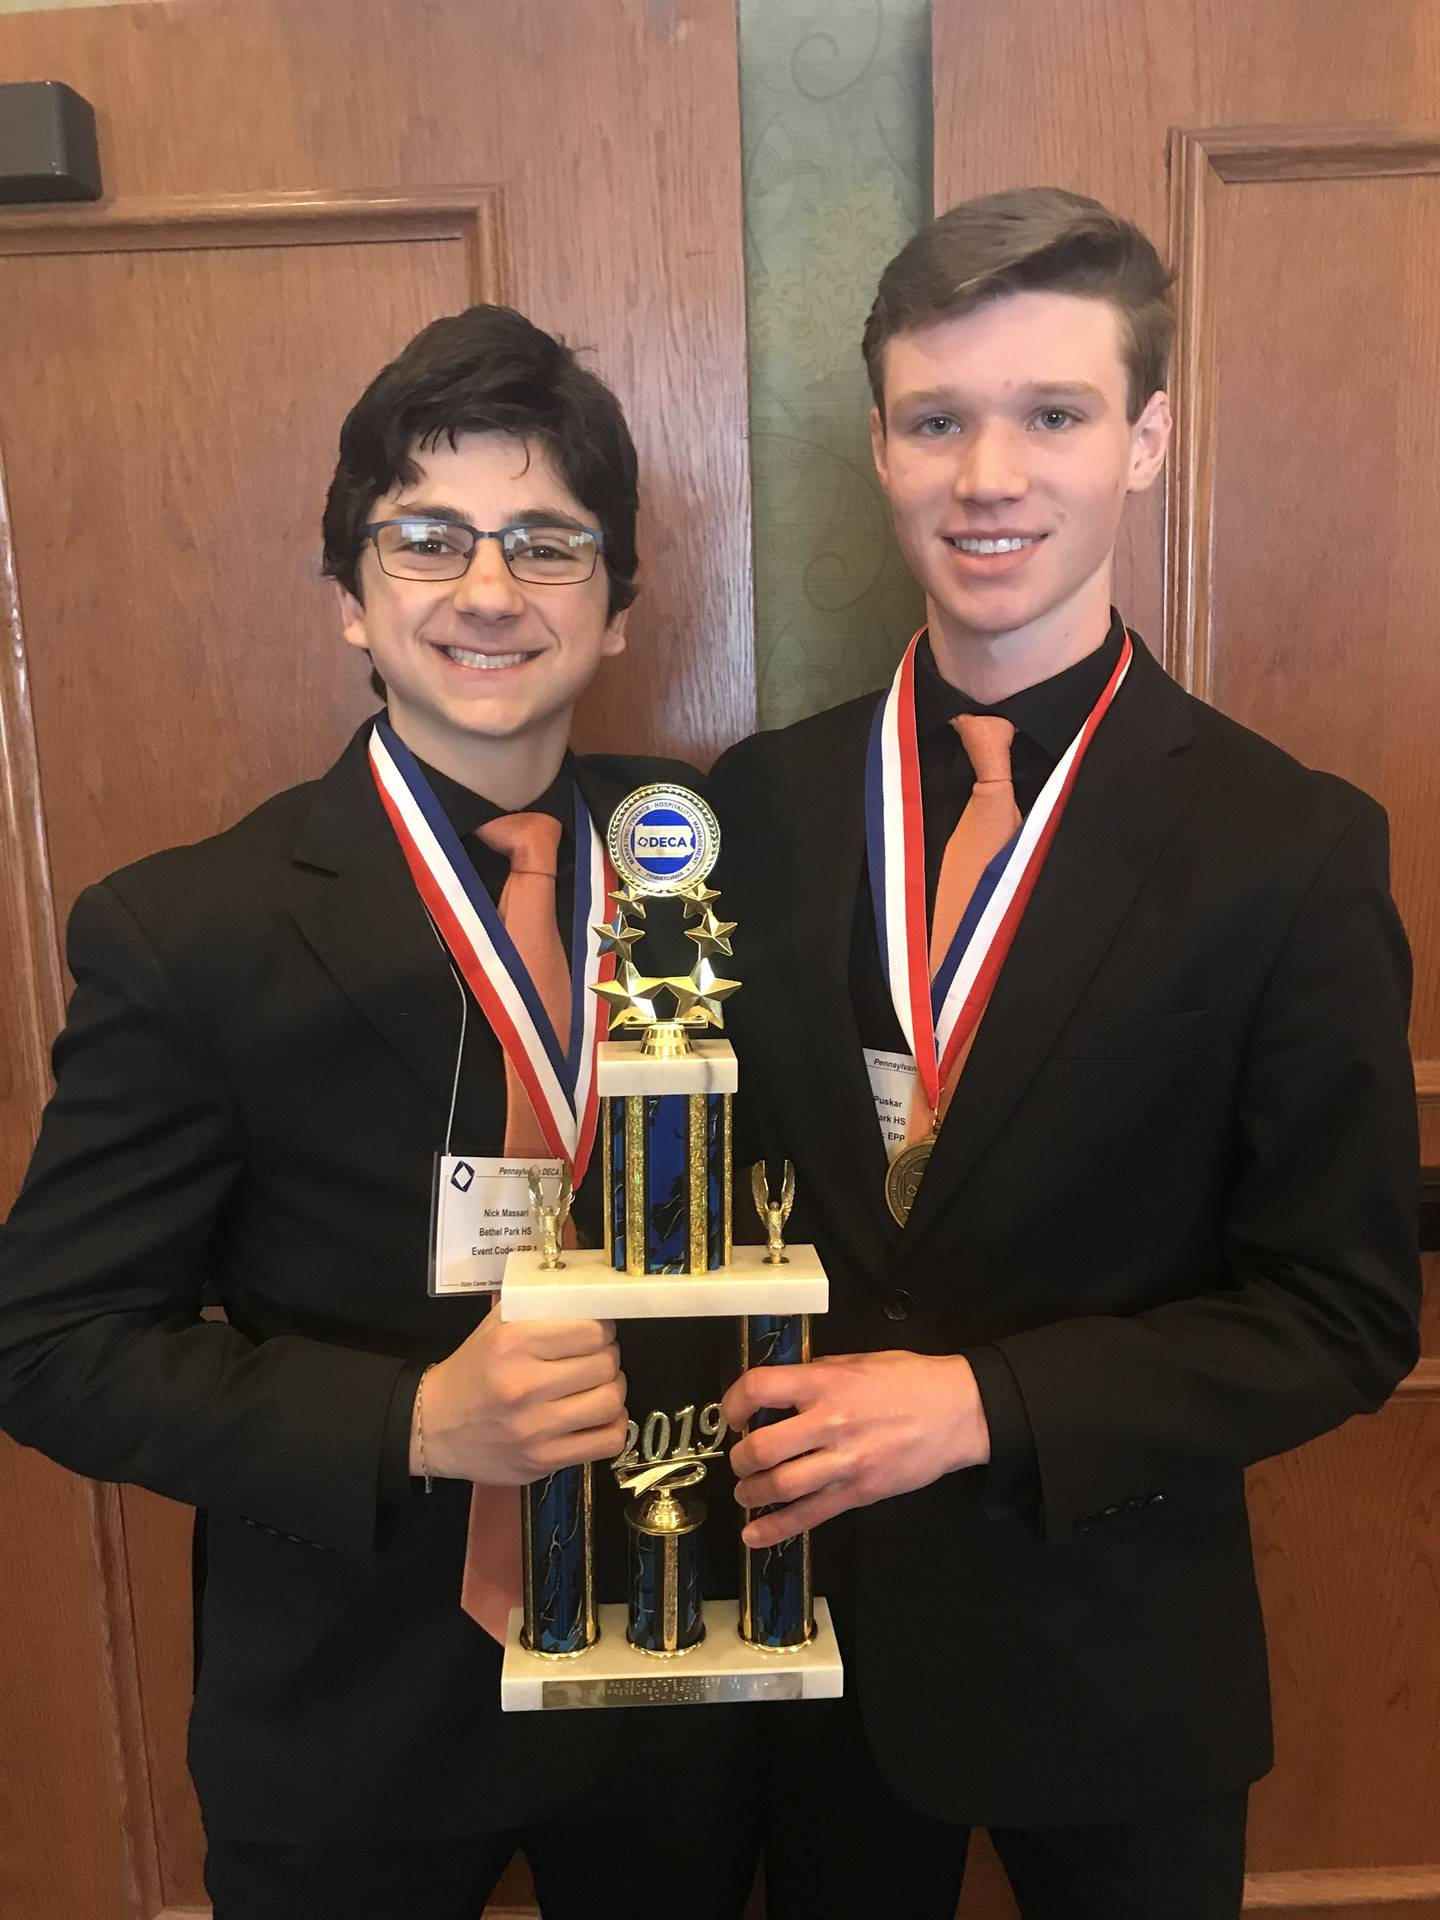 Two students with medals and trophy